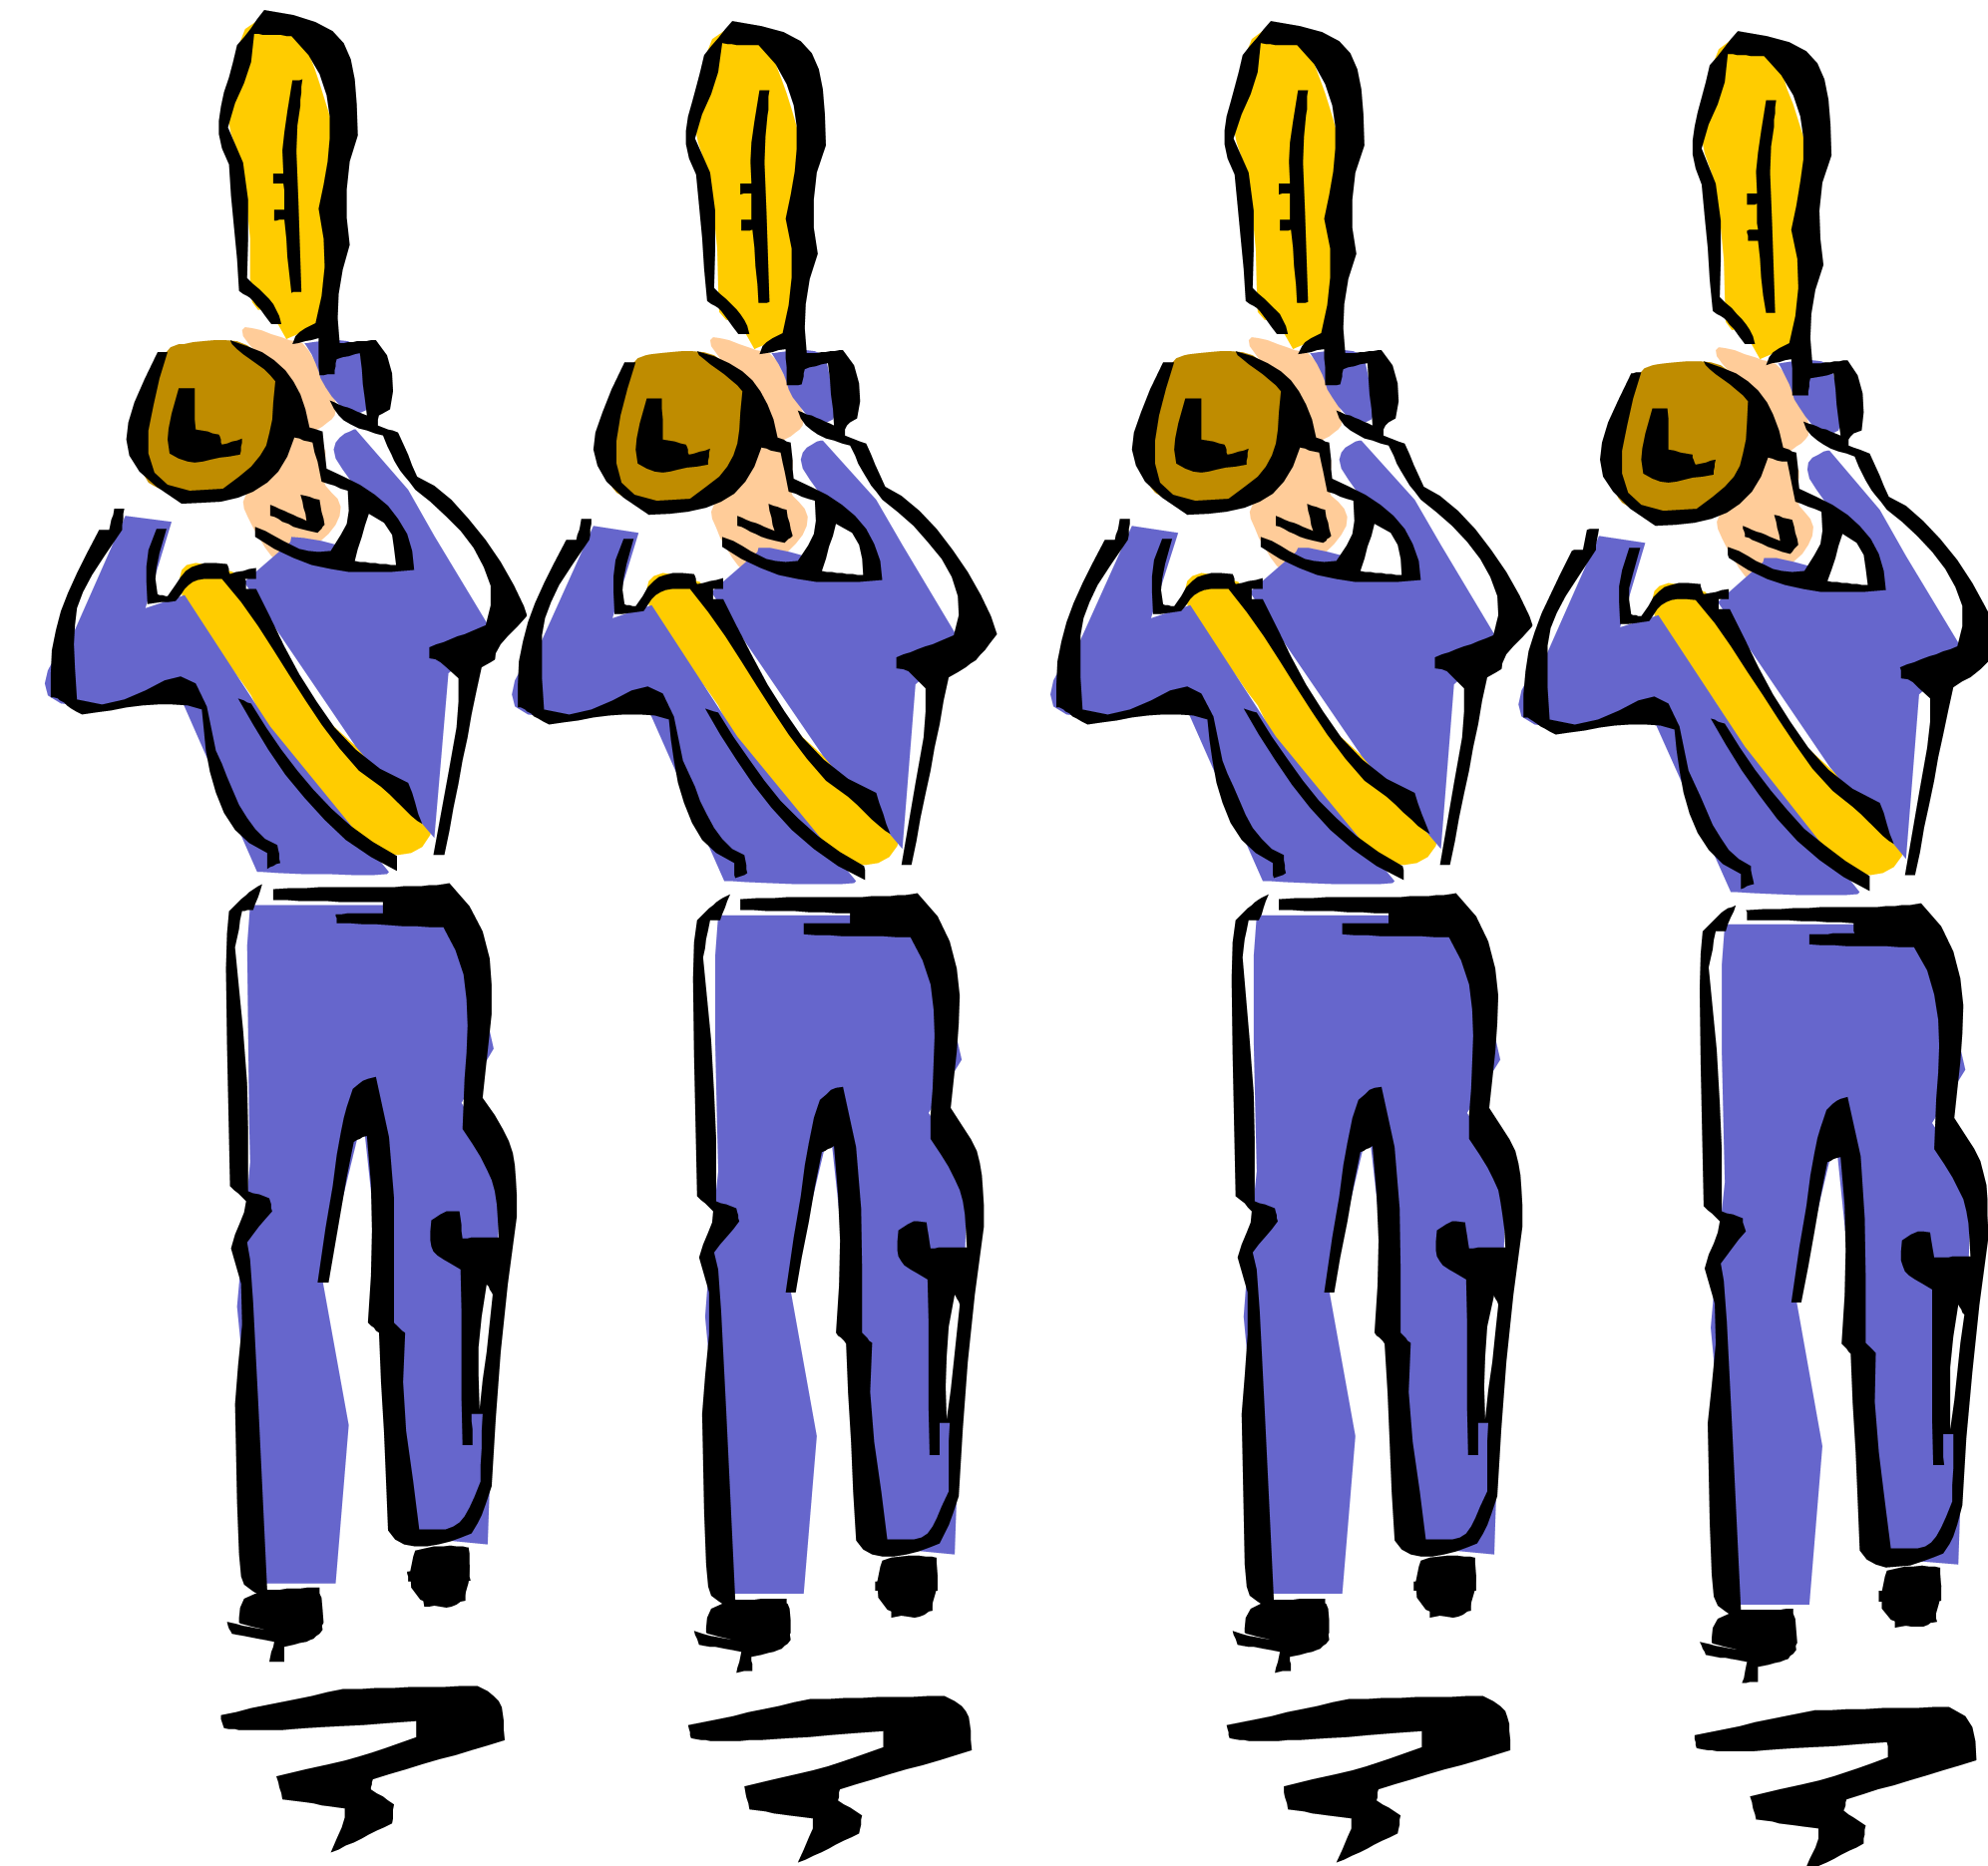 School Band Clip Art   Clipart Best